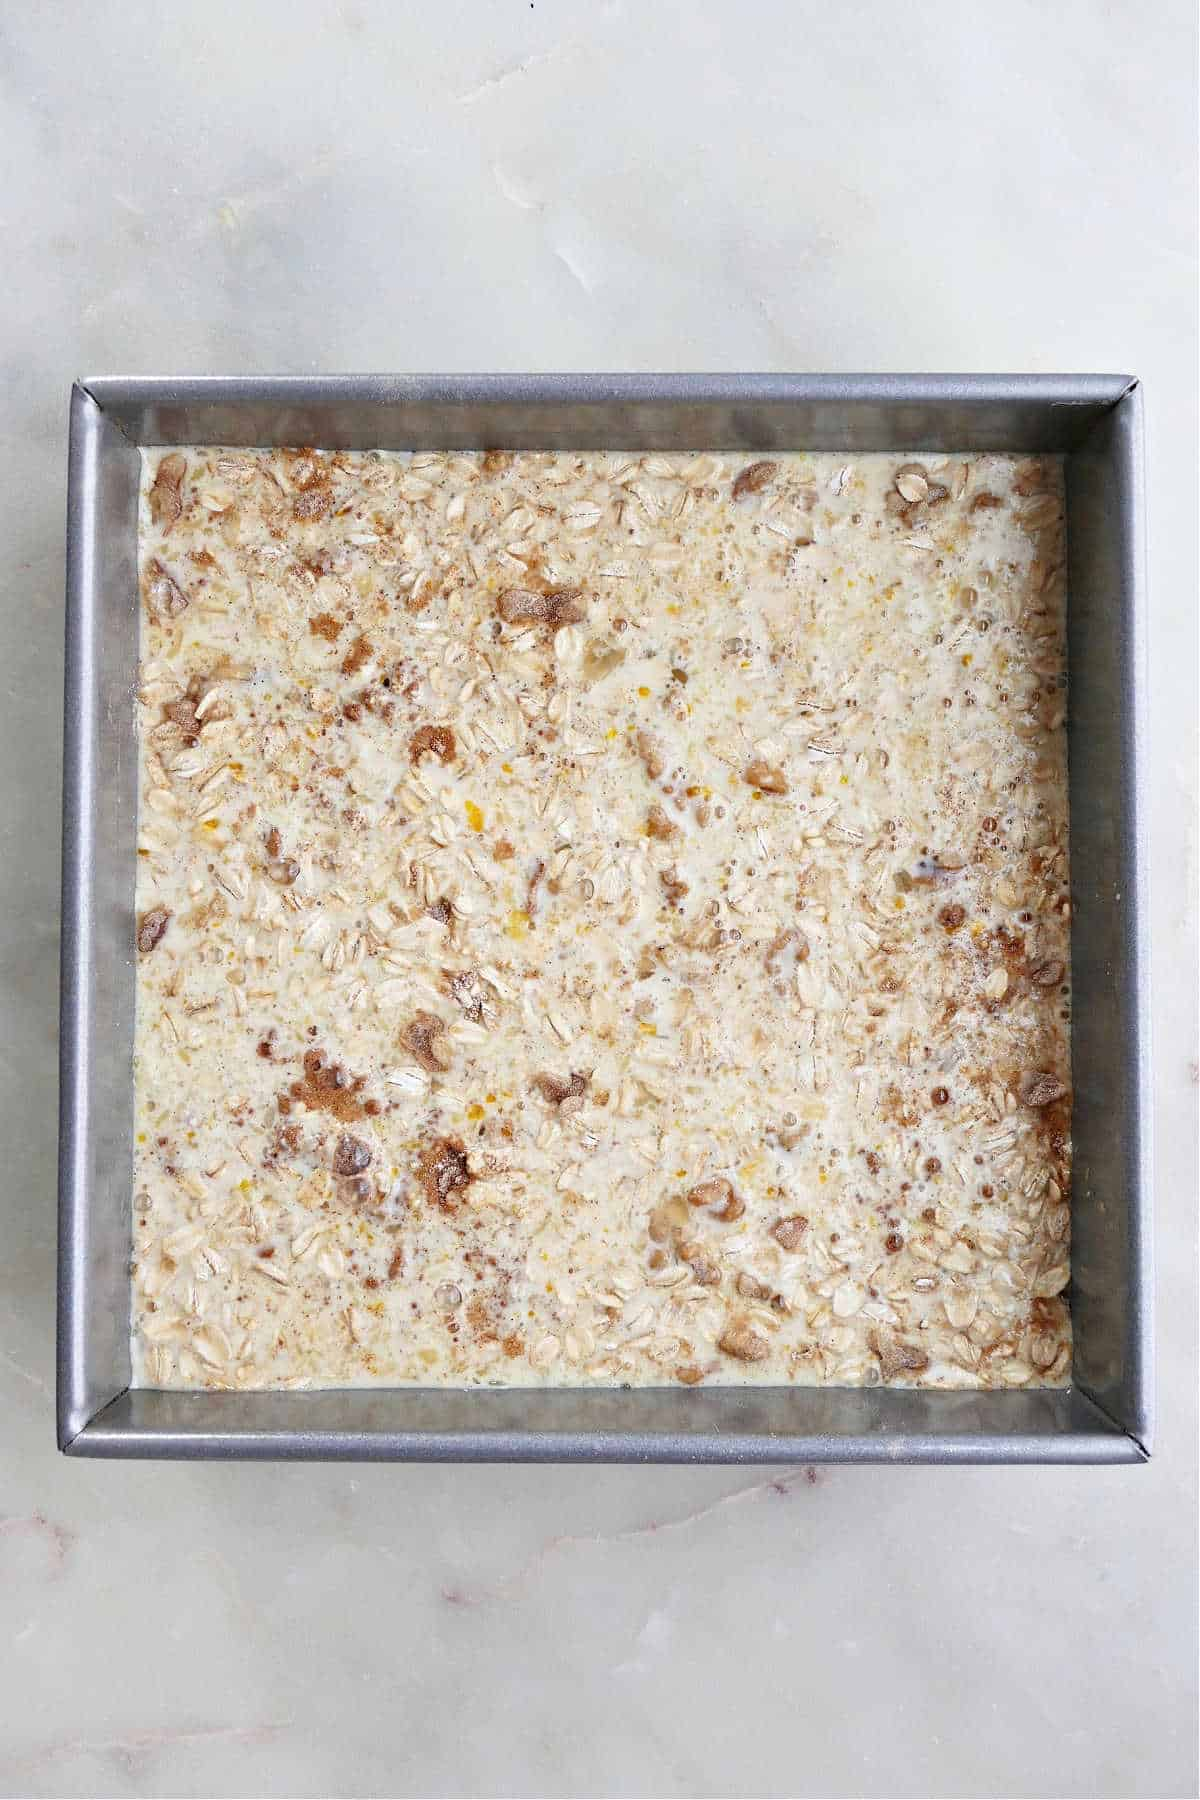 dry and wet ingredients for baked peach oatmeal spread out in a baking dish